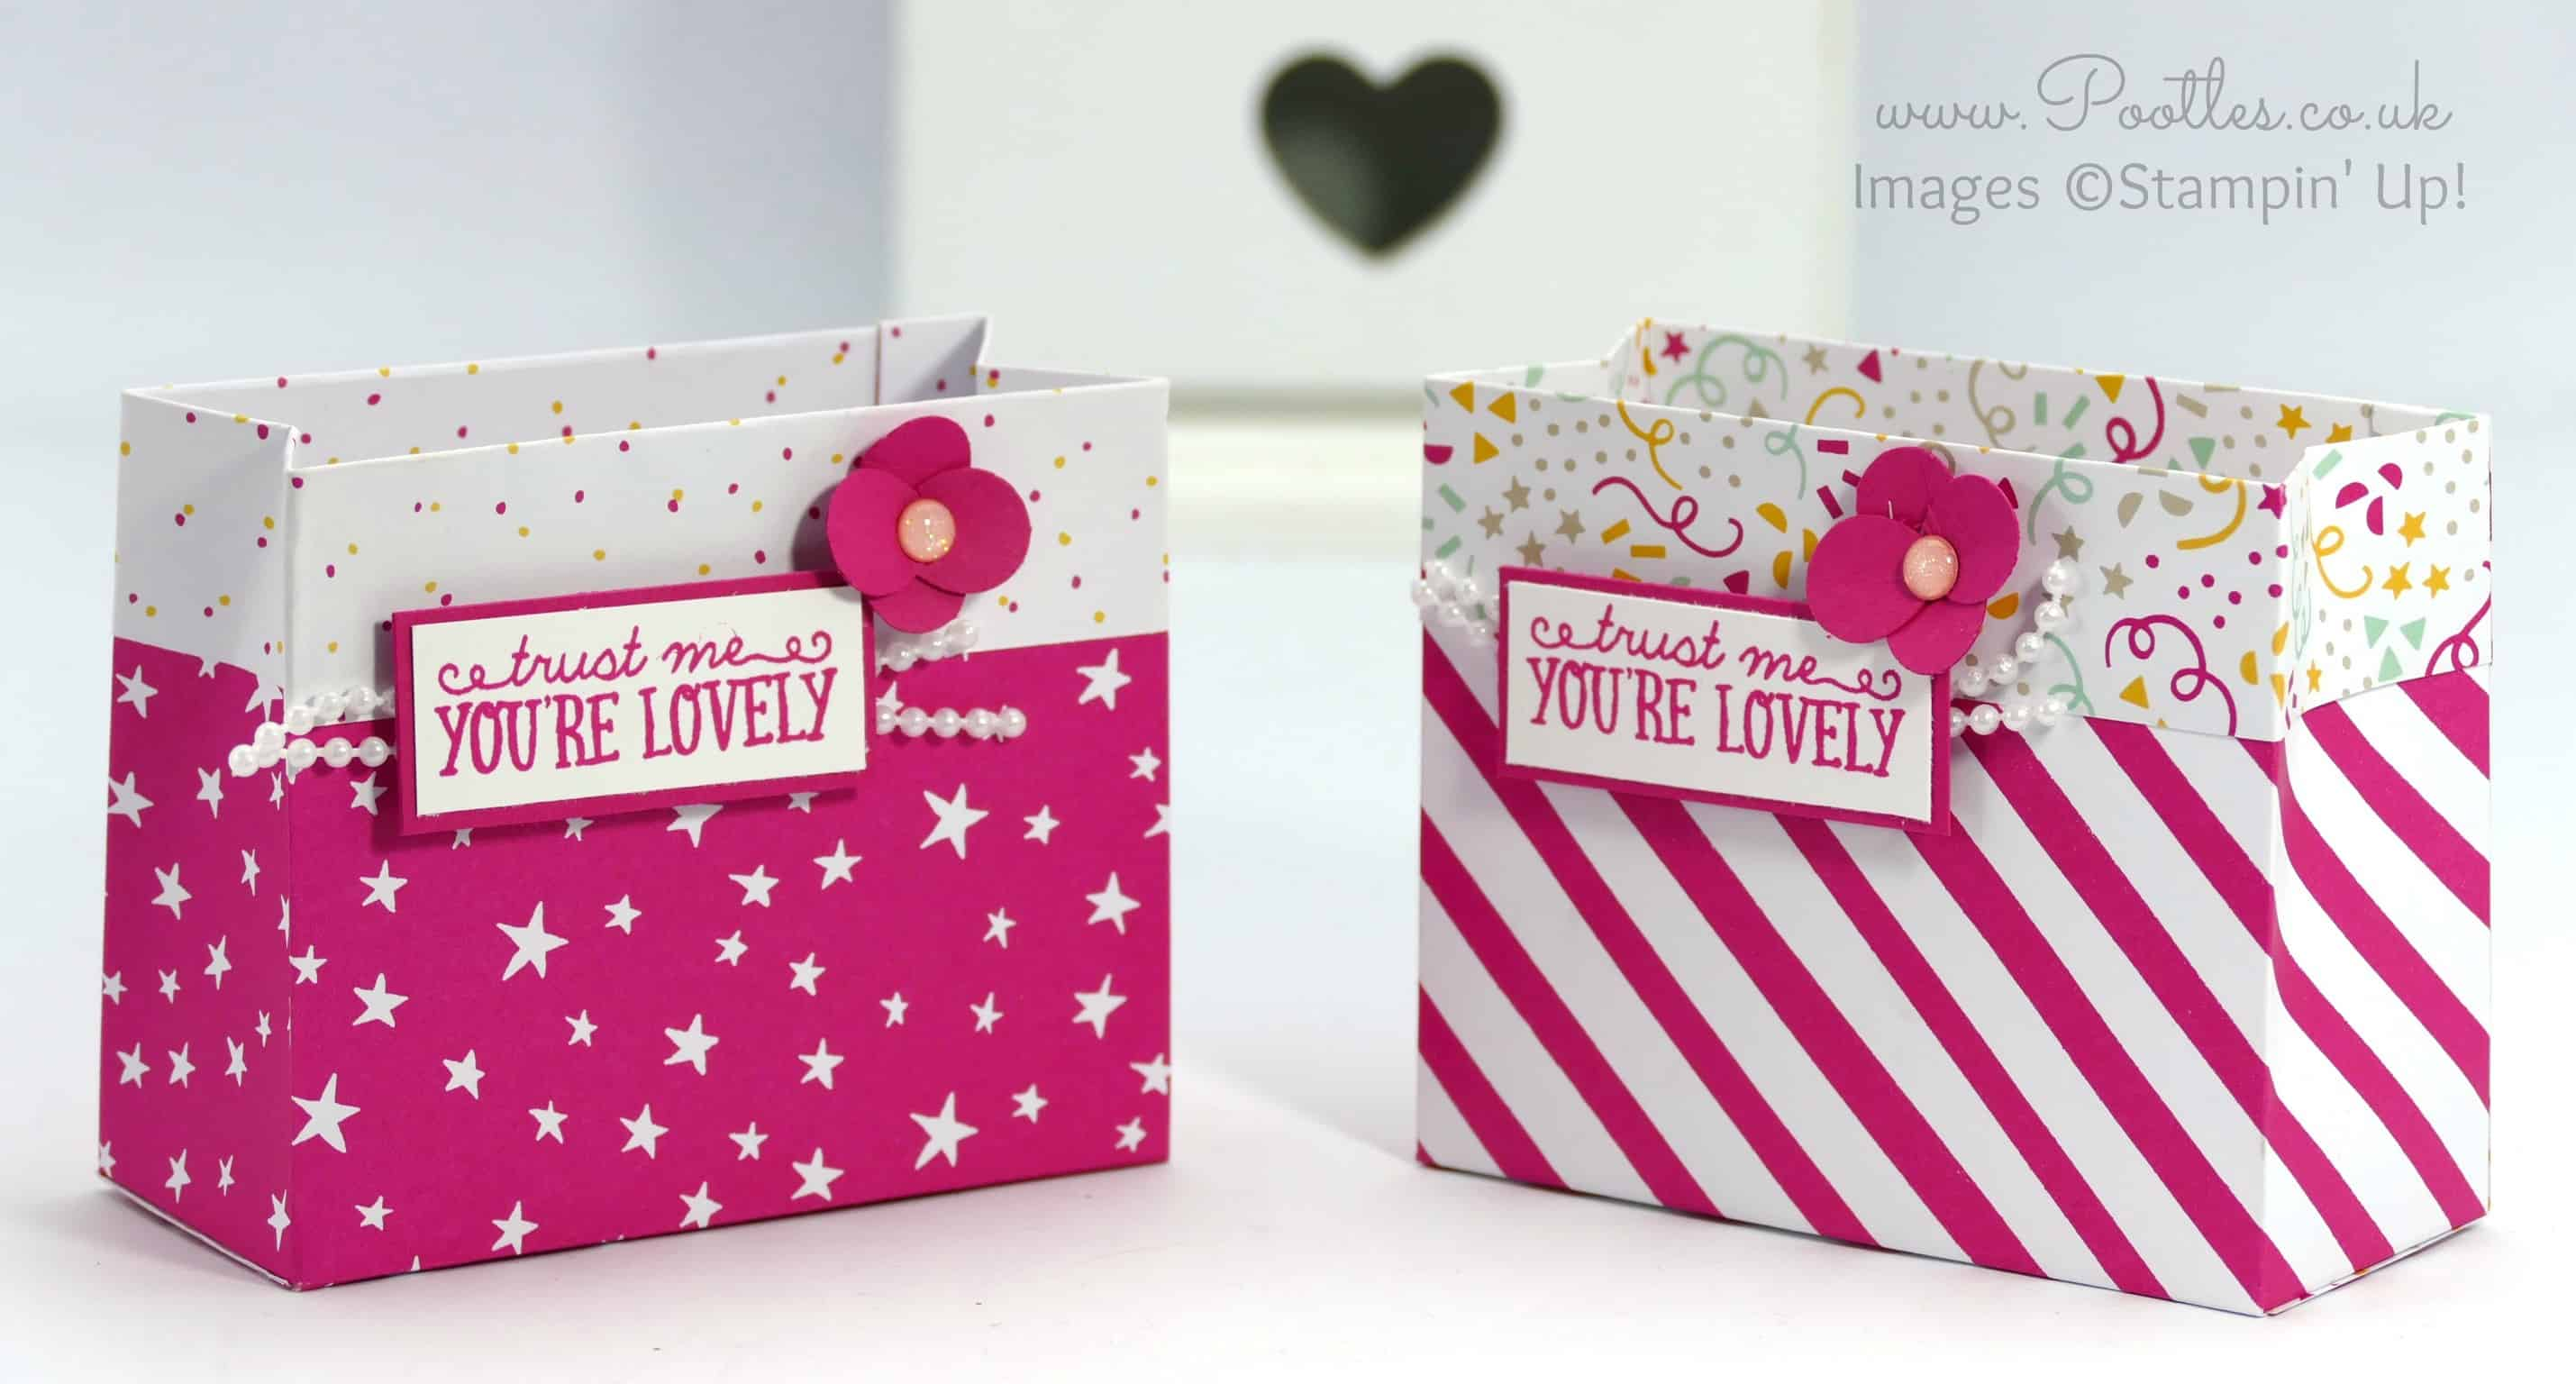 Party Bag using Stampin' Up! DSP